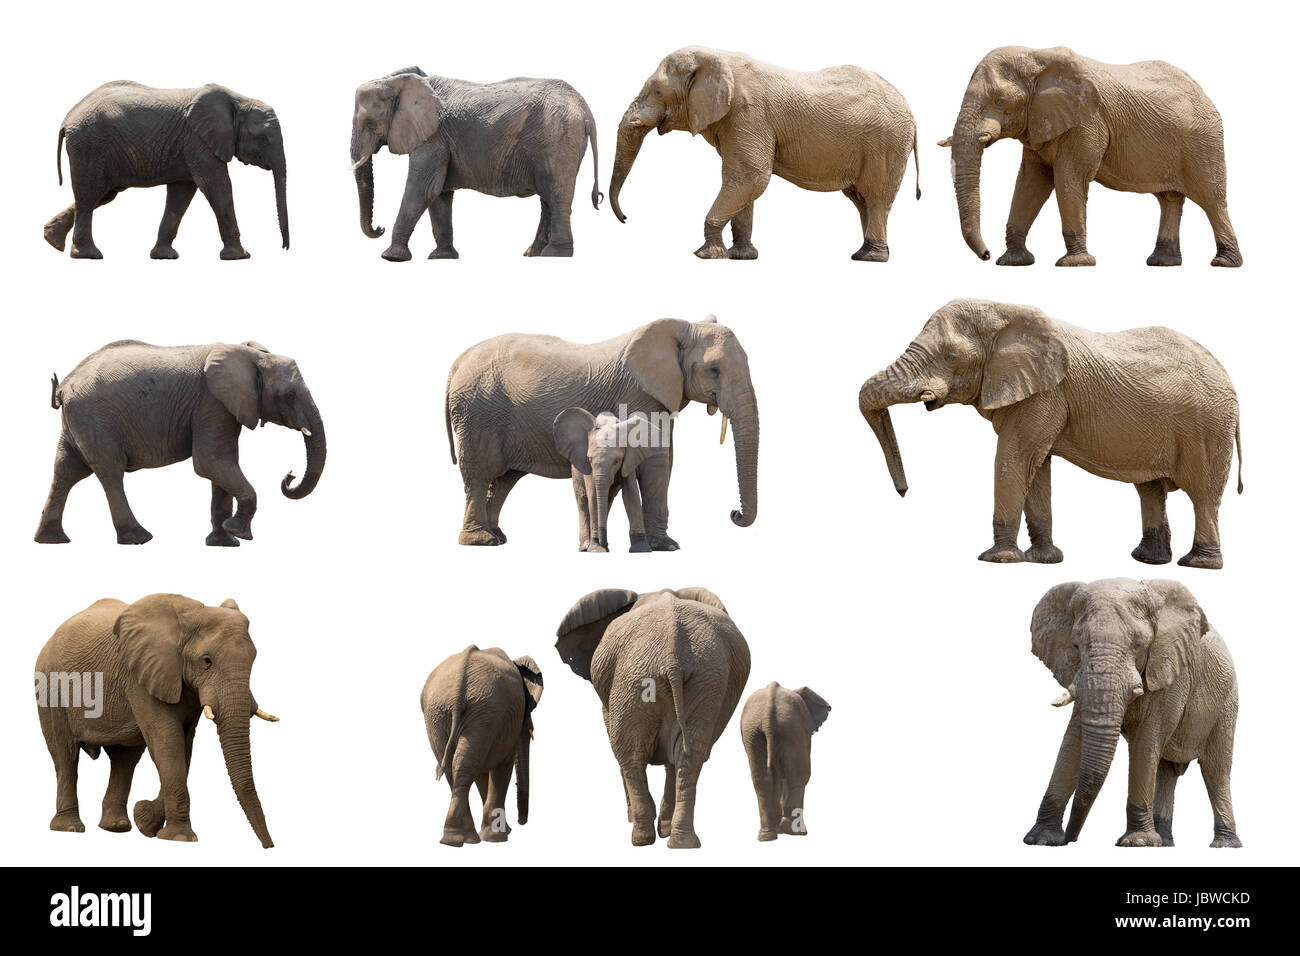 collection of several elephants isolated on white background - Stock Image